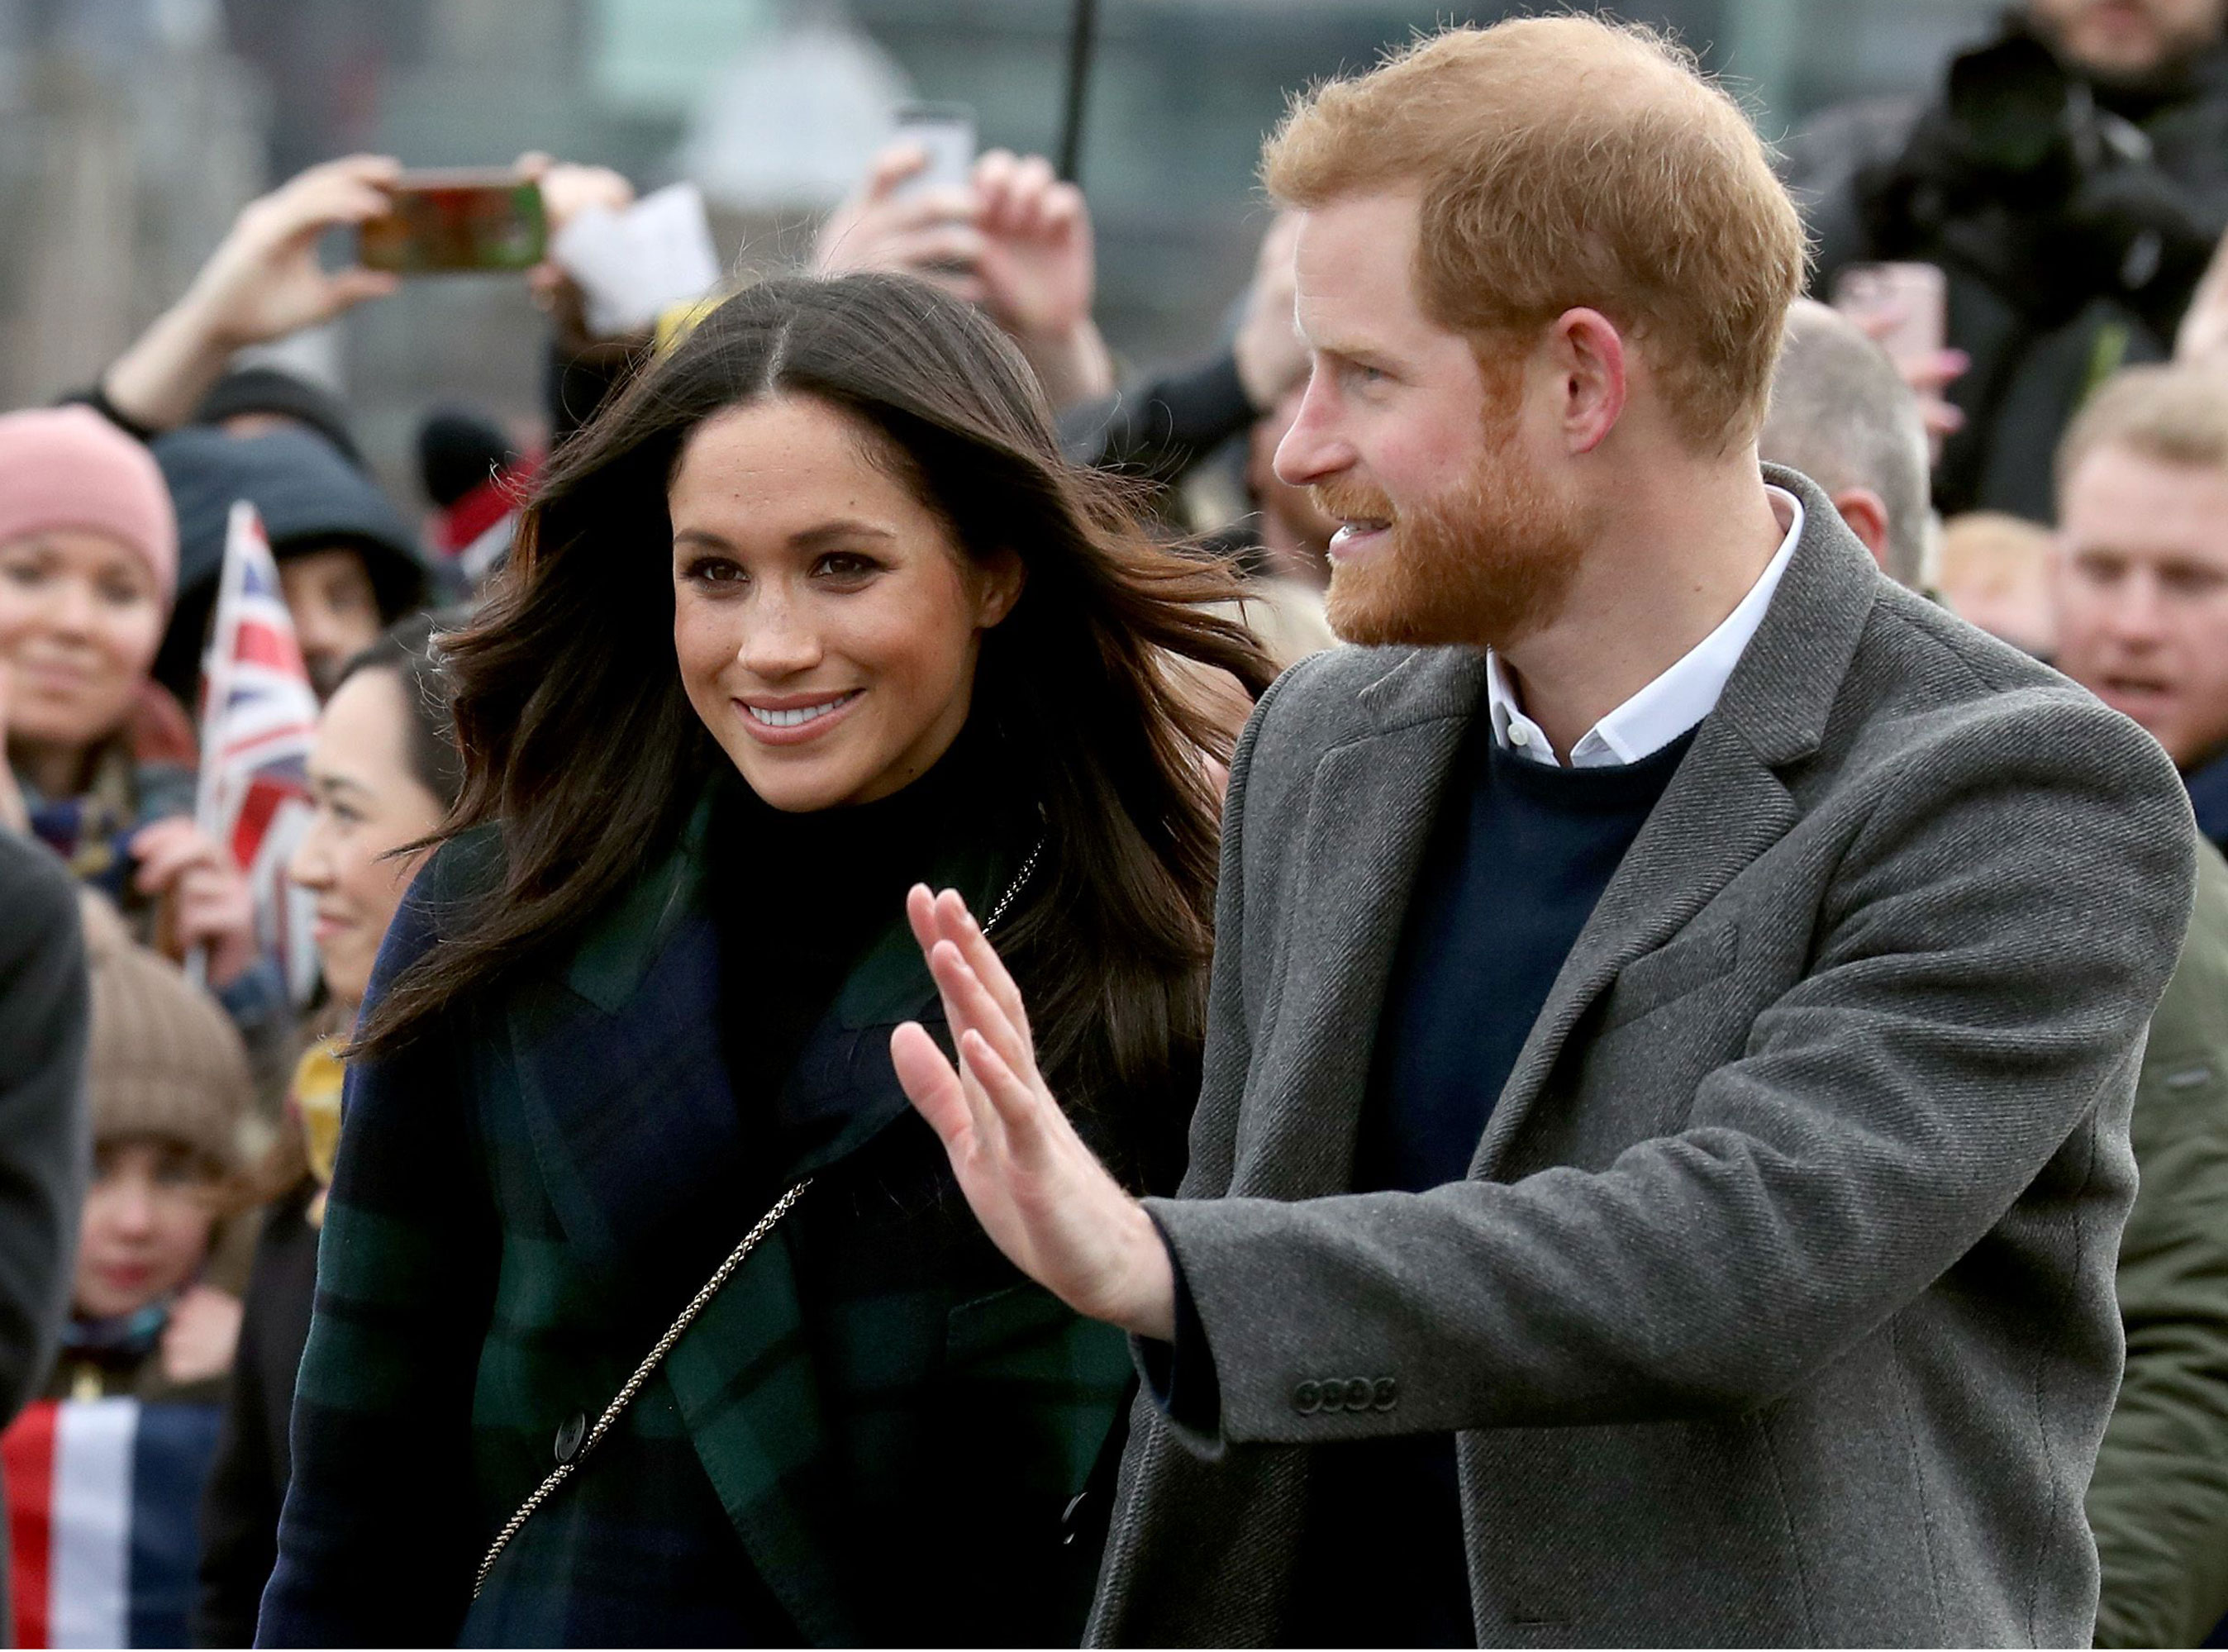 Meghan Markle Targeted In Terrifying Racist Hate Crime'